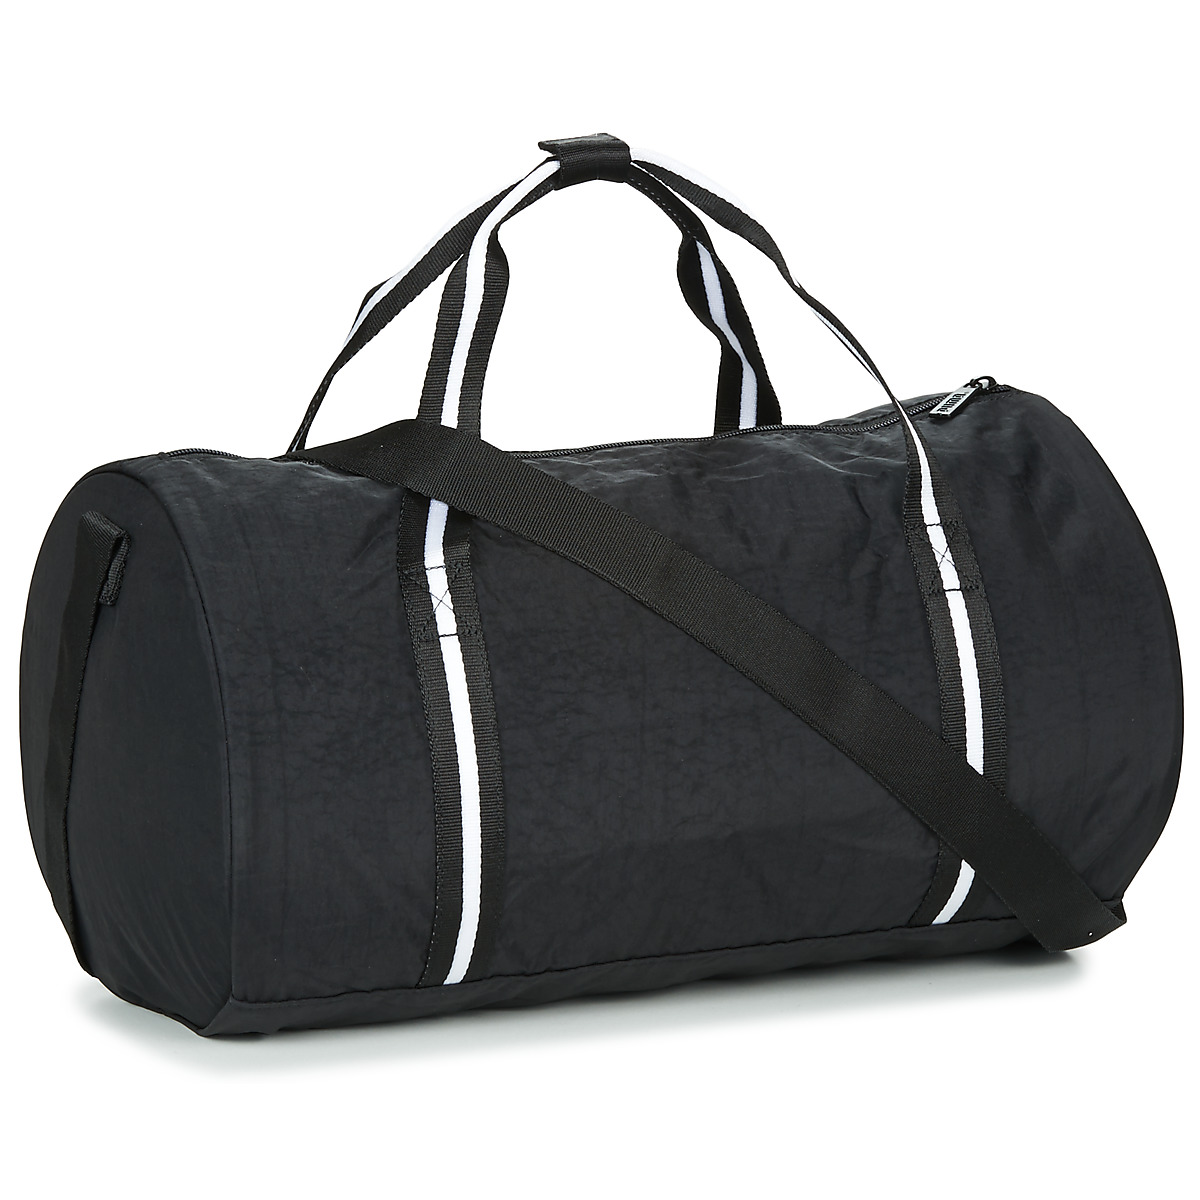 Borsa da sport donna Puma  WMN CORE BARREL BAG  Nero